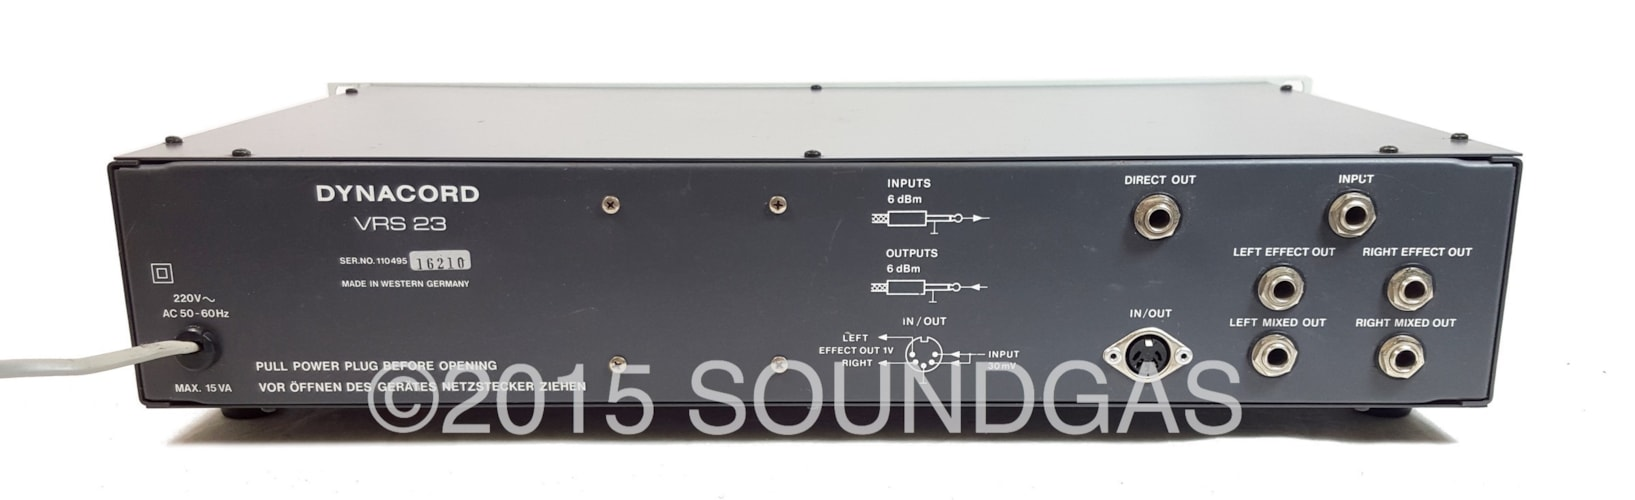 Dynacord VRS 23 Vertical Reverberation System Excellent, $680.00